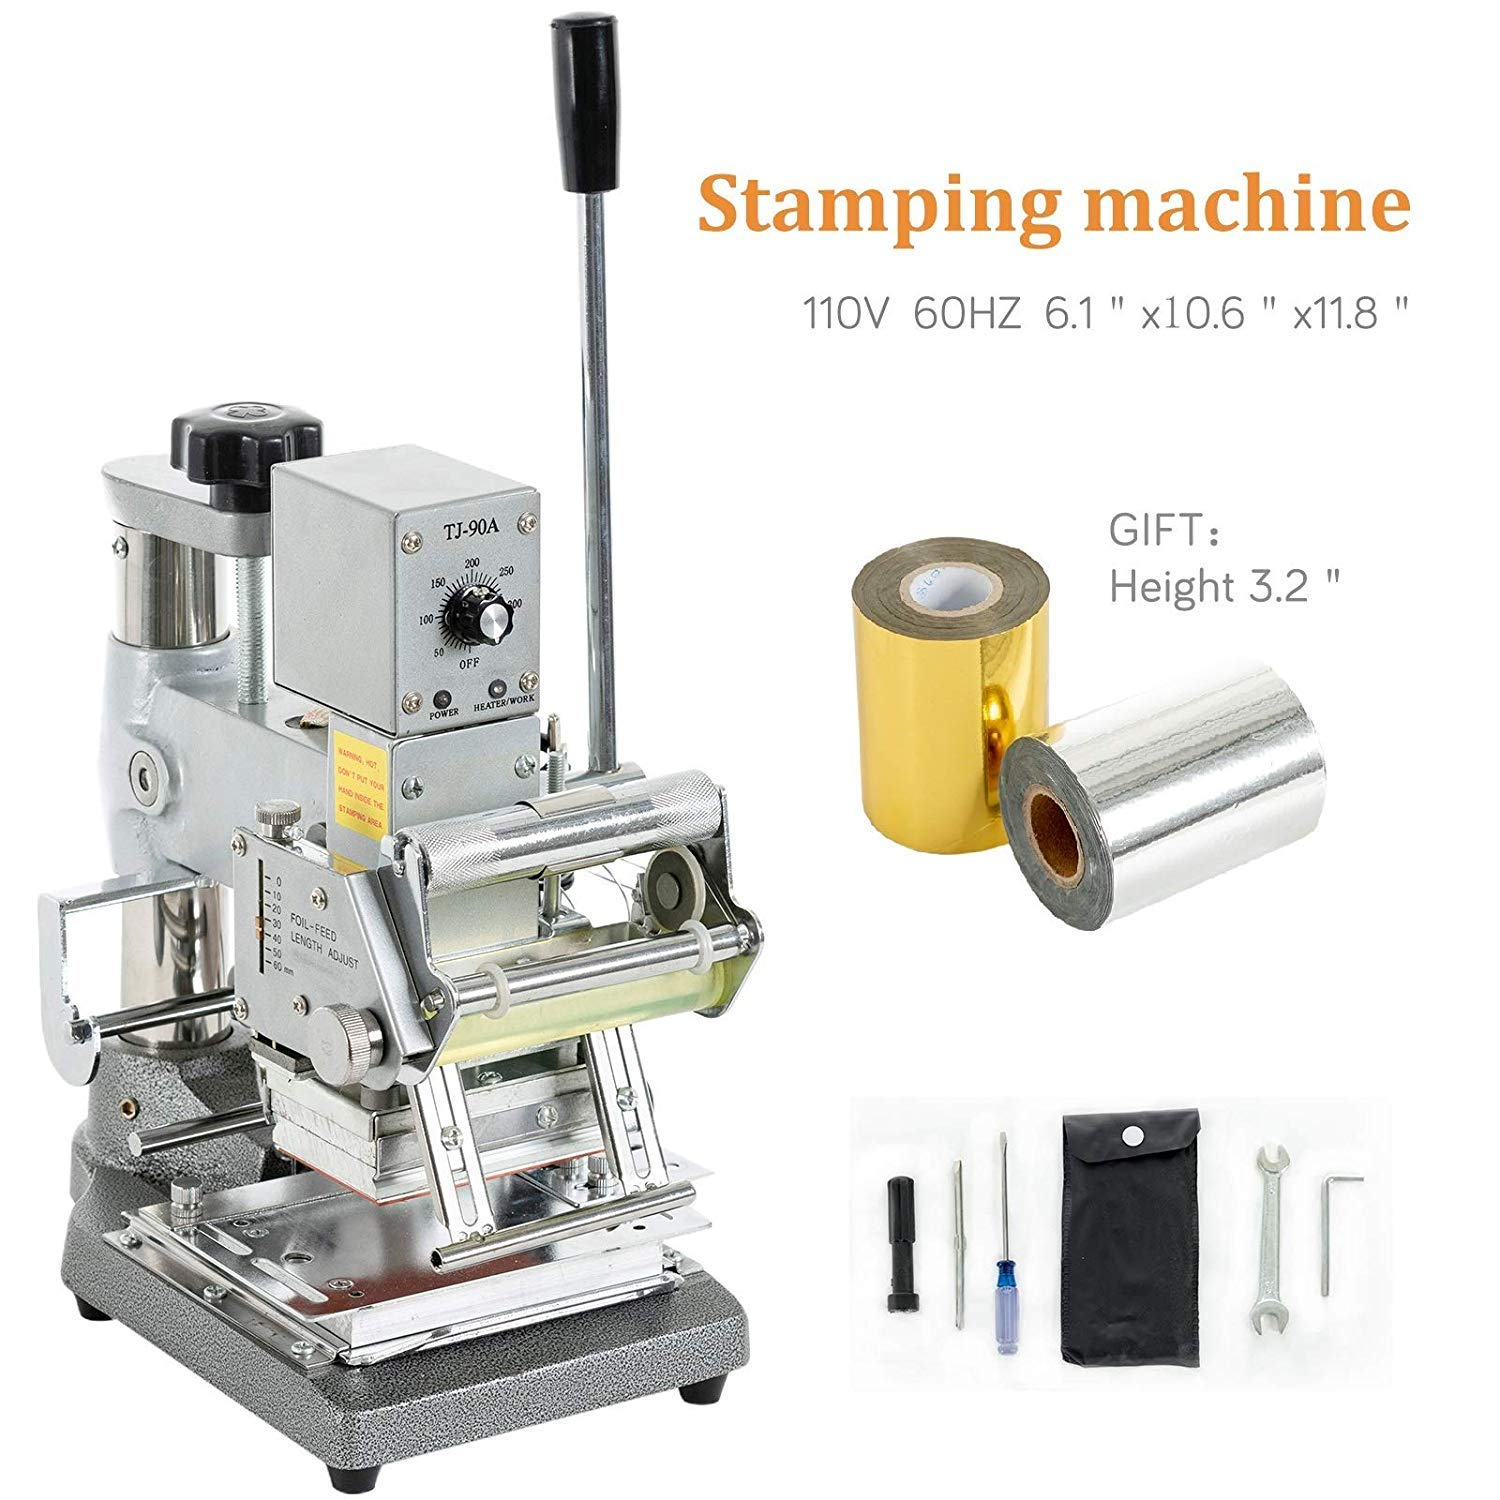 SUNCOO Hot Foil Stamping Machine 2.4 Inch x 3.5 Inch Bronzing Machine Embossing Machine Printing Logo for PVC Card, Credit Card with Foil Paper